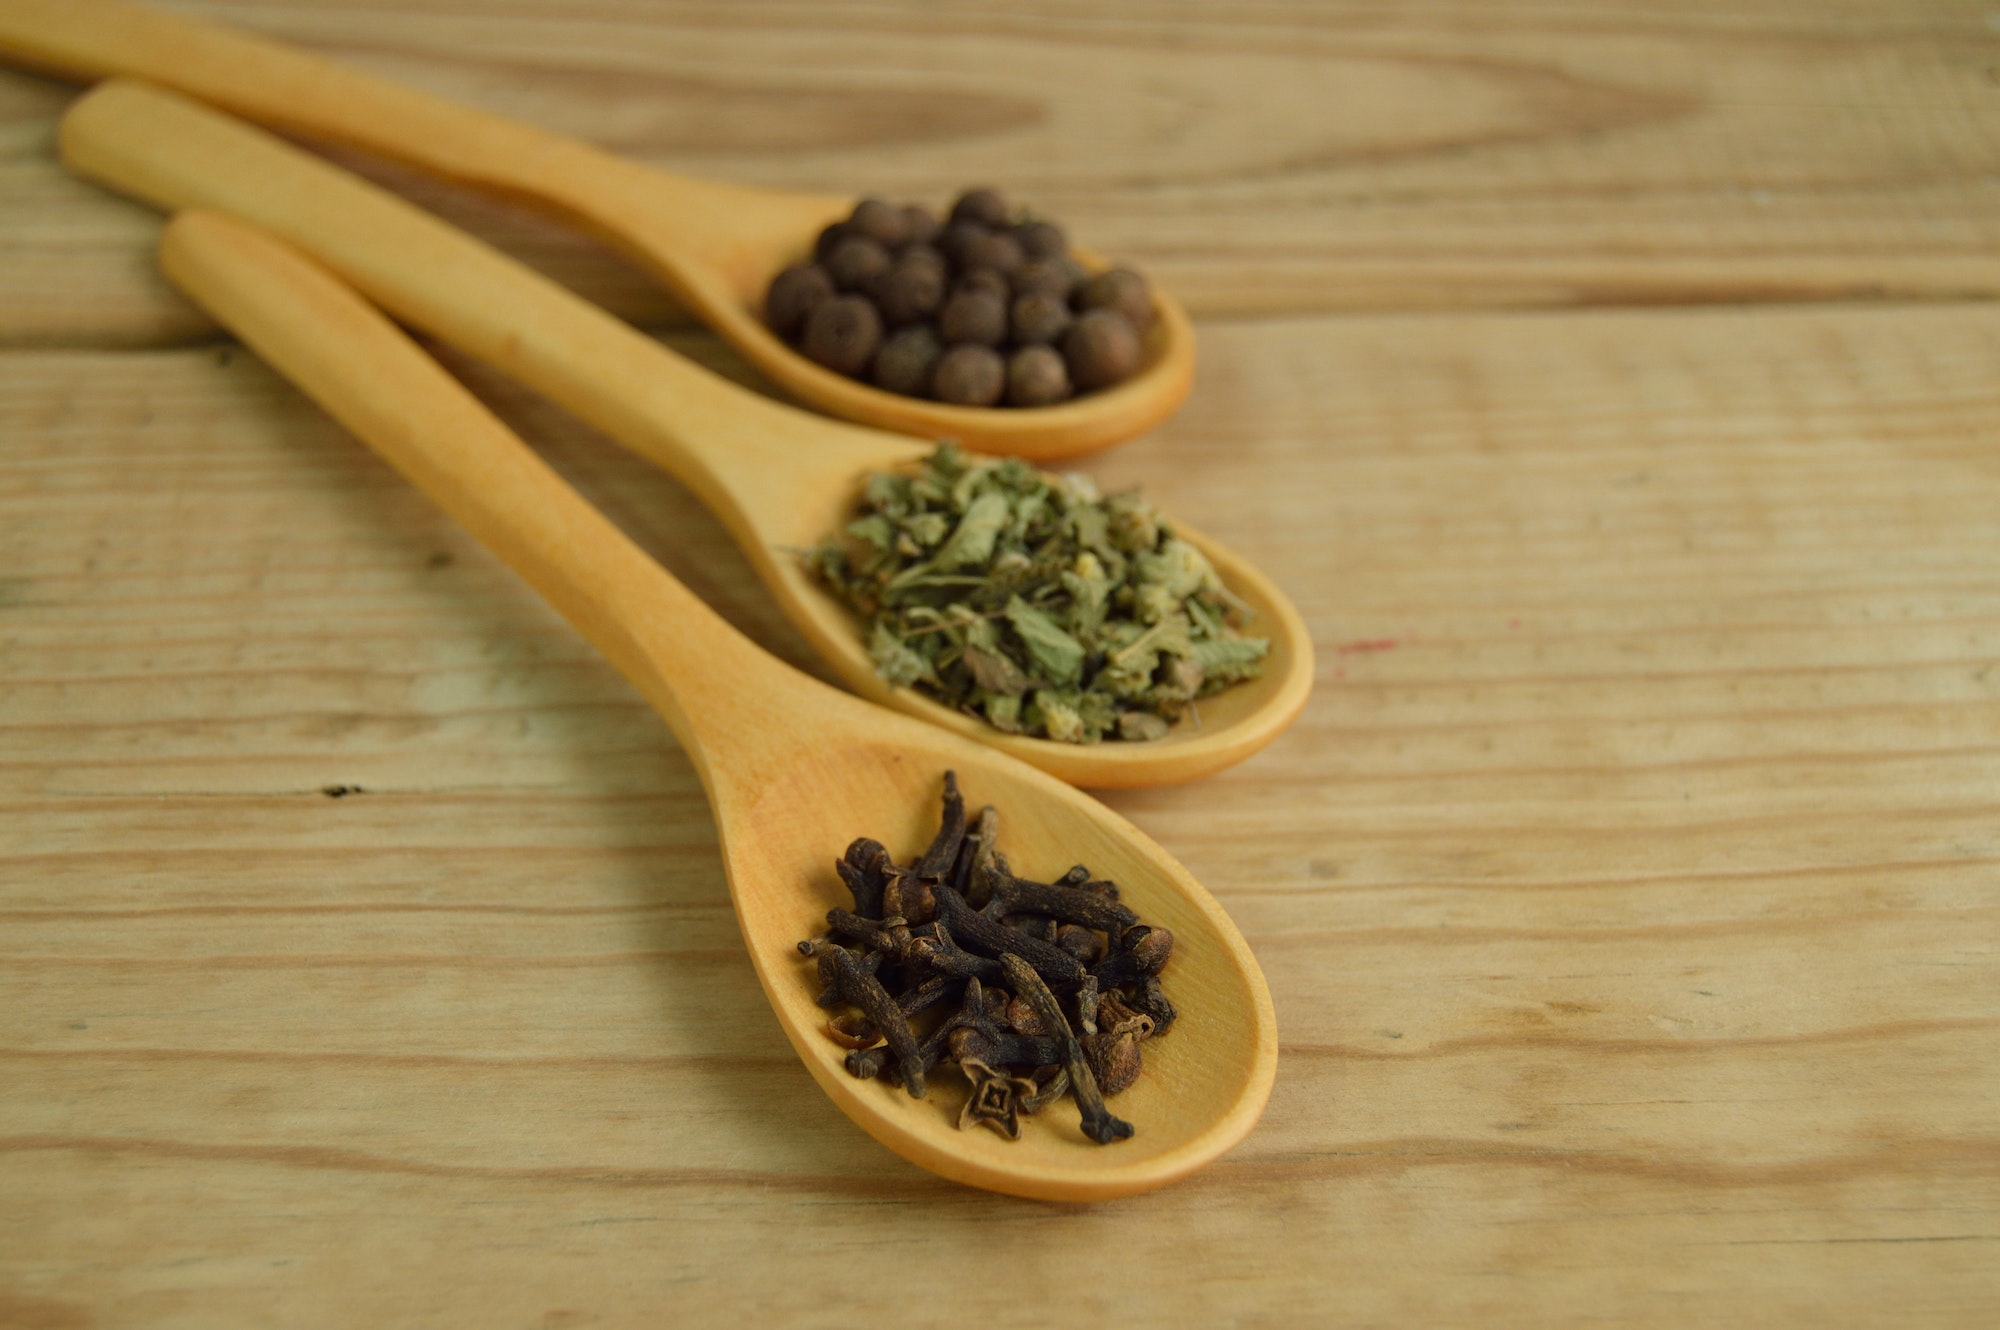 Chronic Pain Natural Remedies To Try | Health | Elle Blonde Luxury Lifestyle Destination Blog